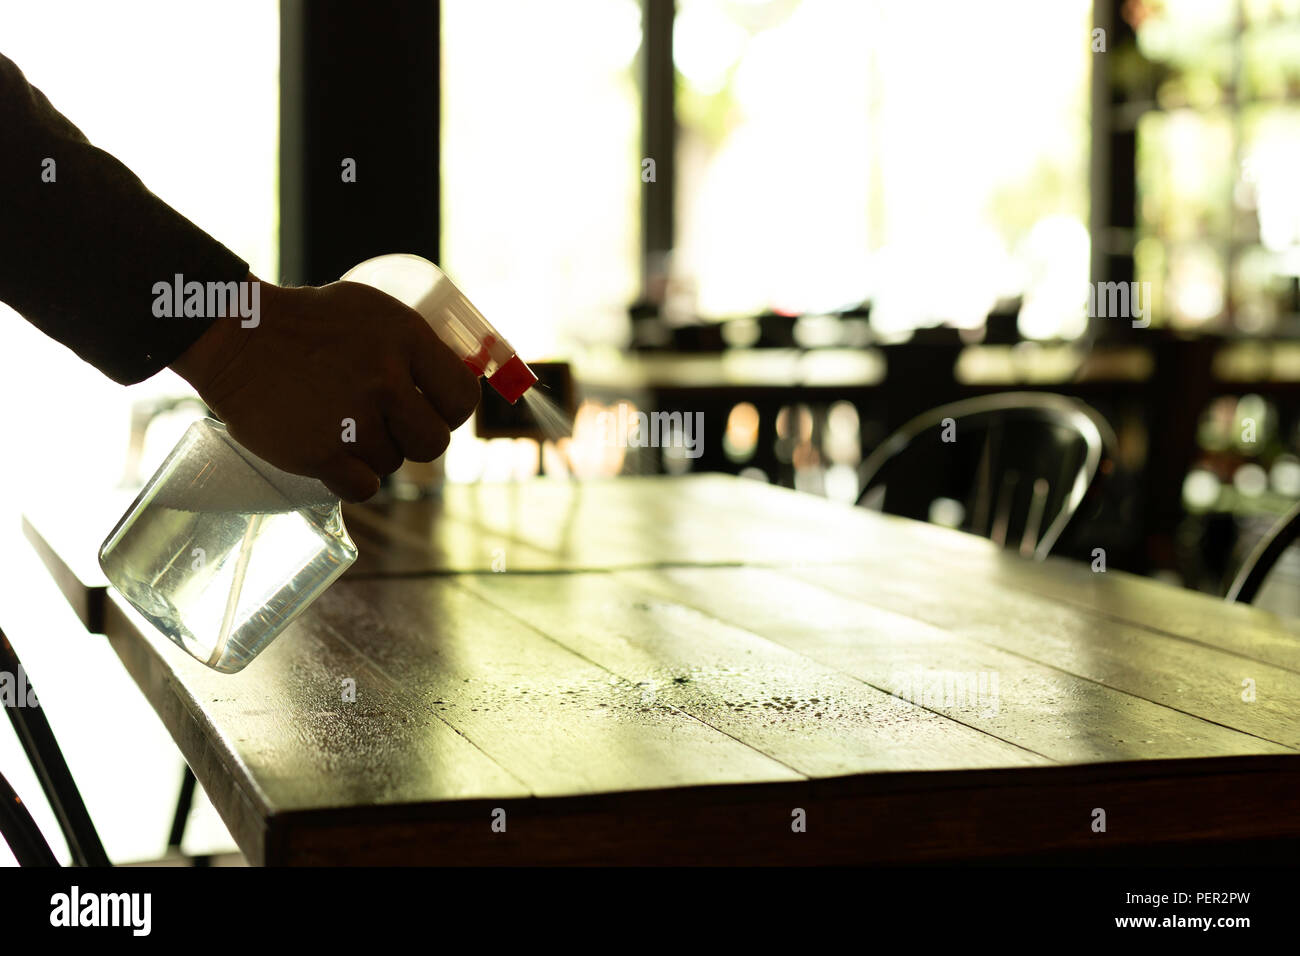 Silhouette waiter cleaning the table with disinfectant spray in a restaurant. - Stock Image